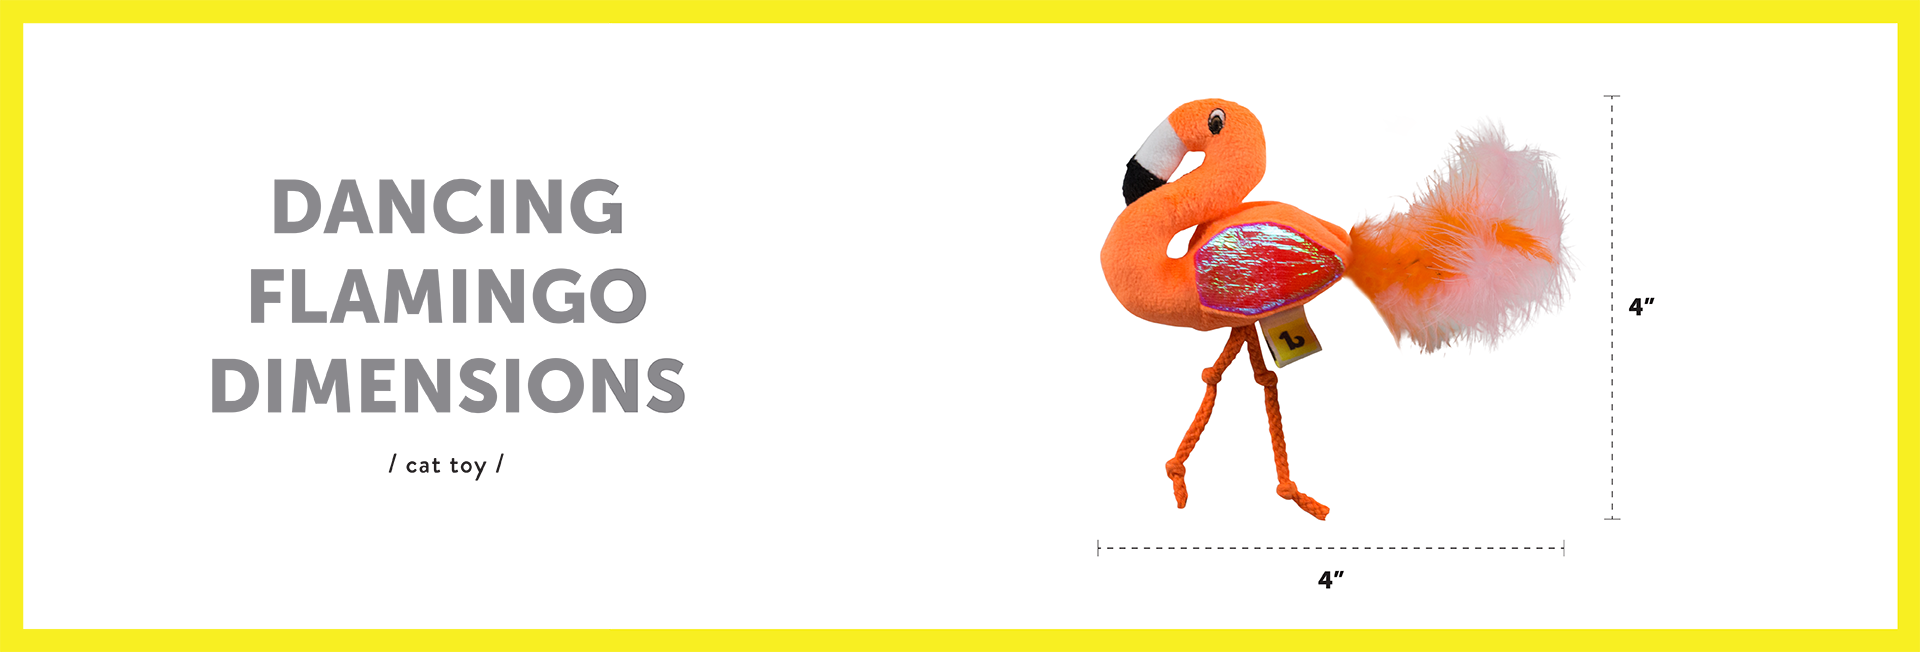 dimensions-dancing-flamingo-for-cats-english